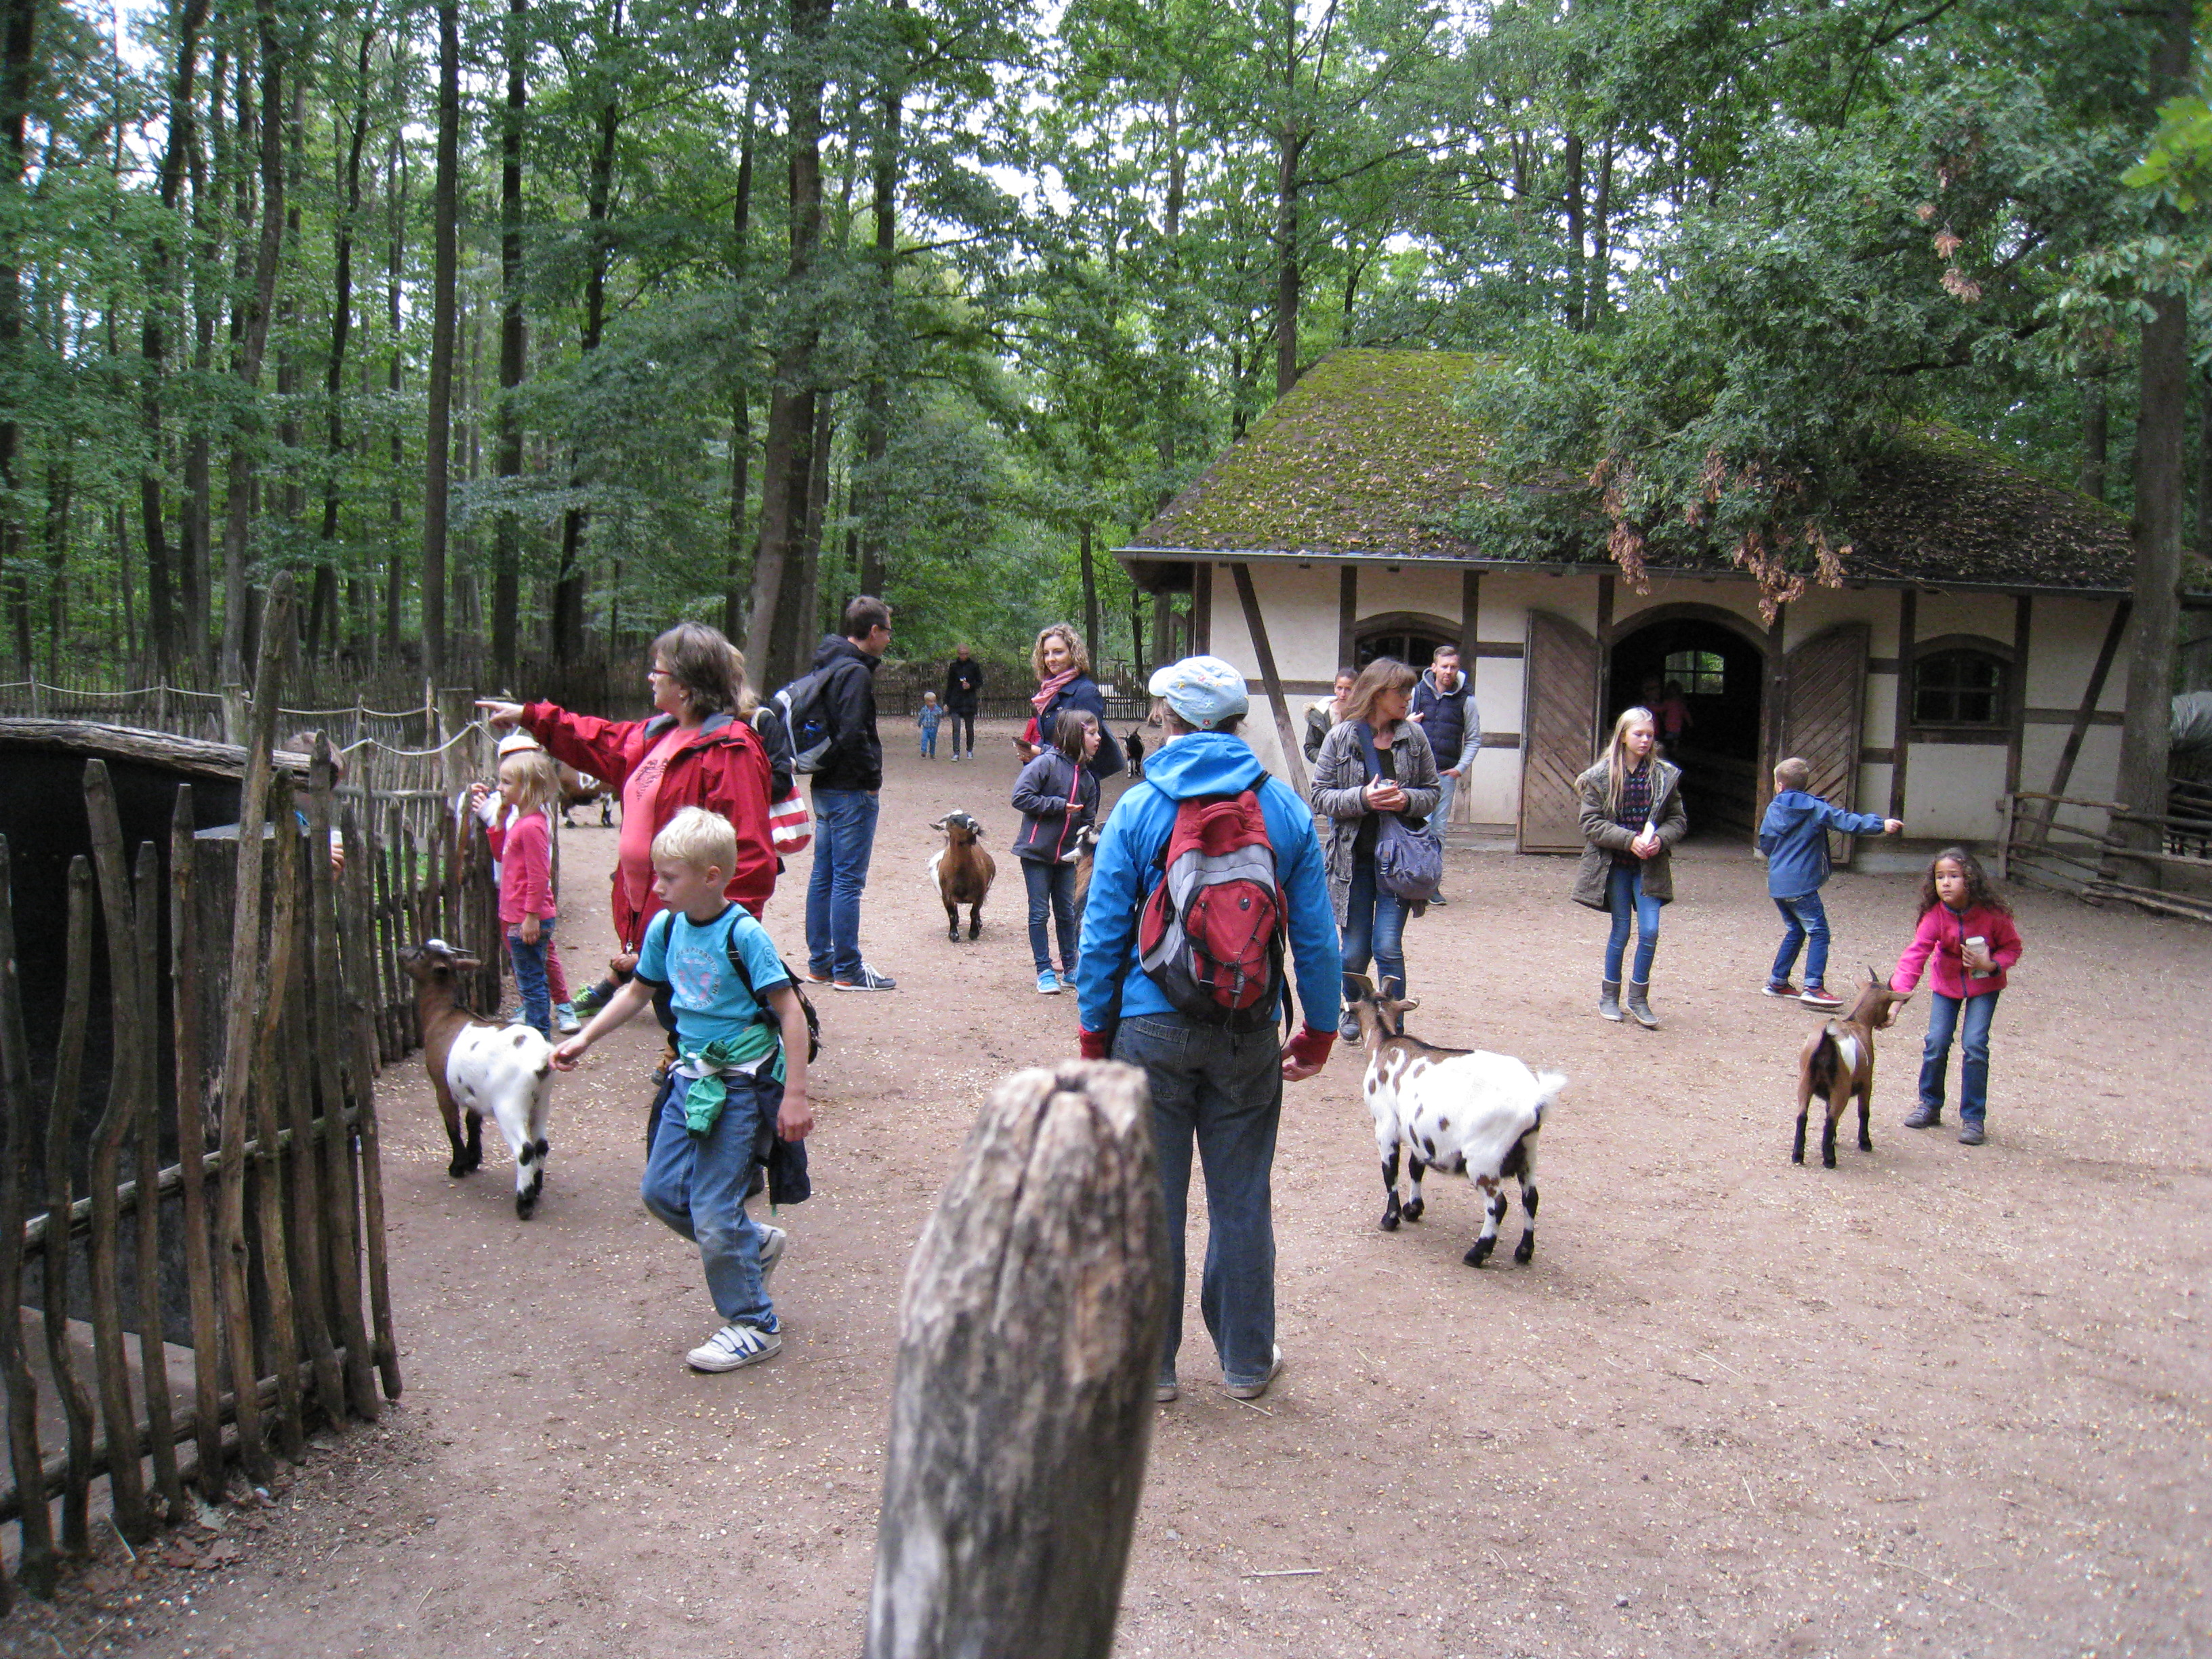 Wildparkbesuch - Bad Mergentheim(101)